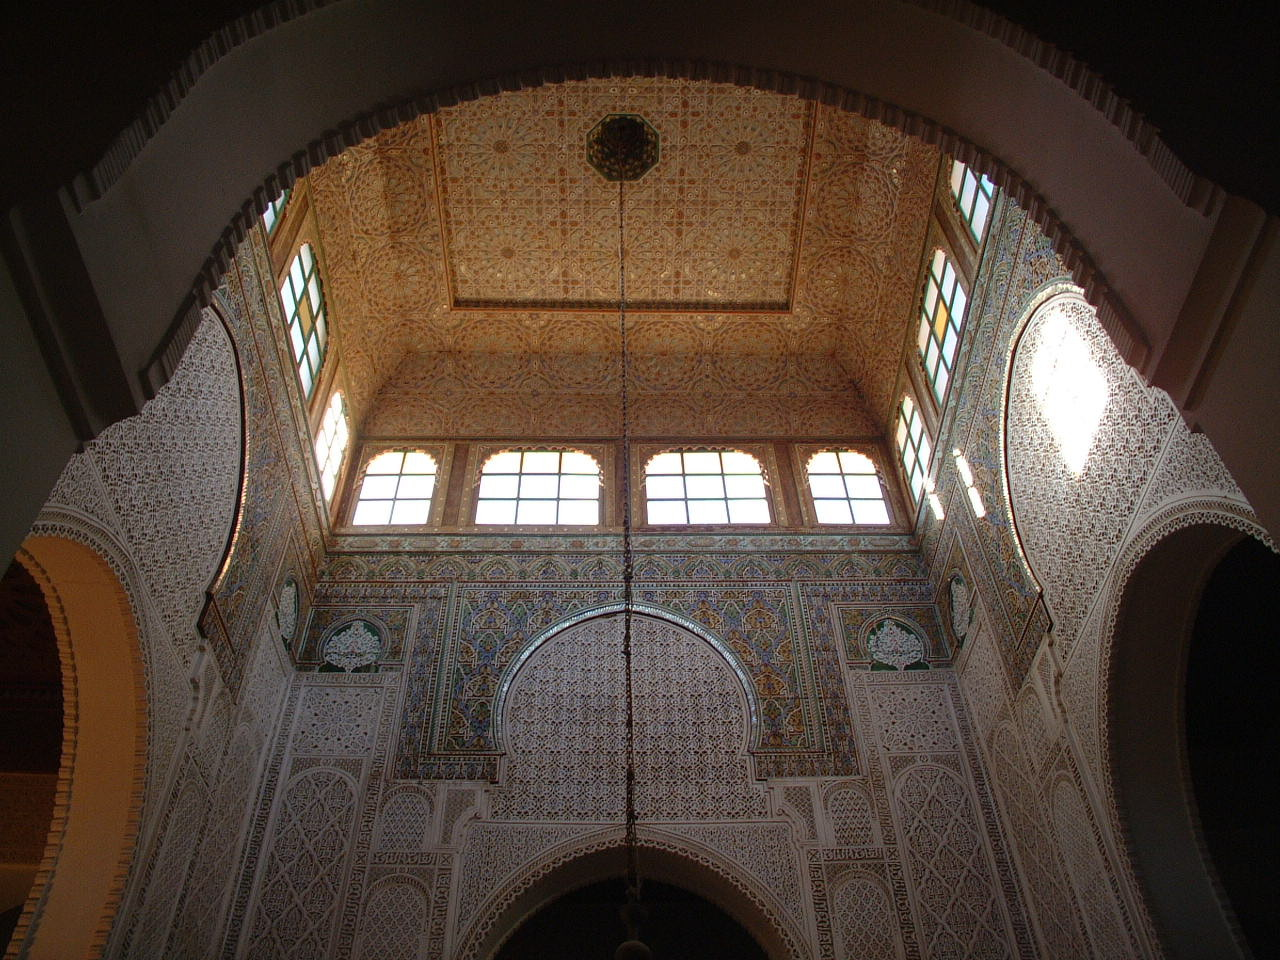 Mausoleum van Moulay Ismaïl in Mèknes, Marokko.